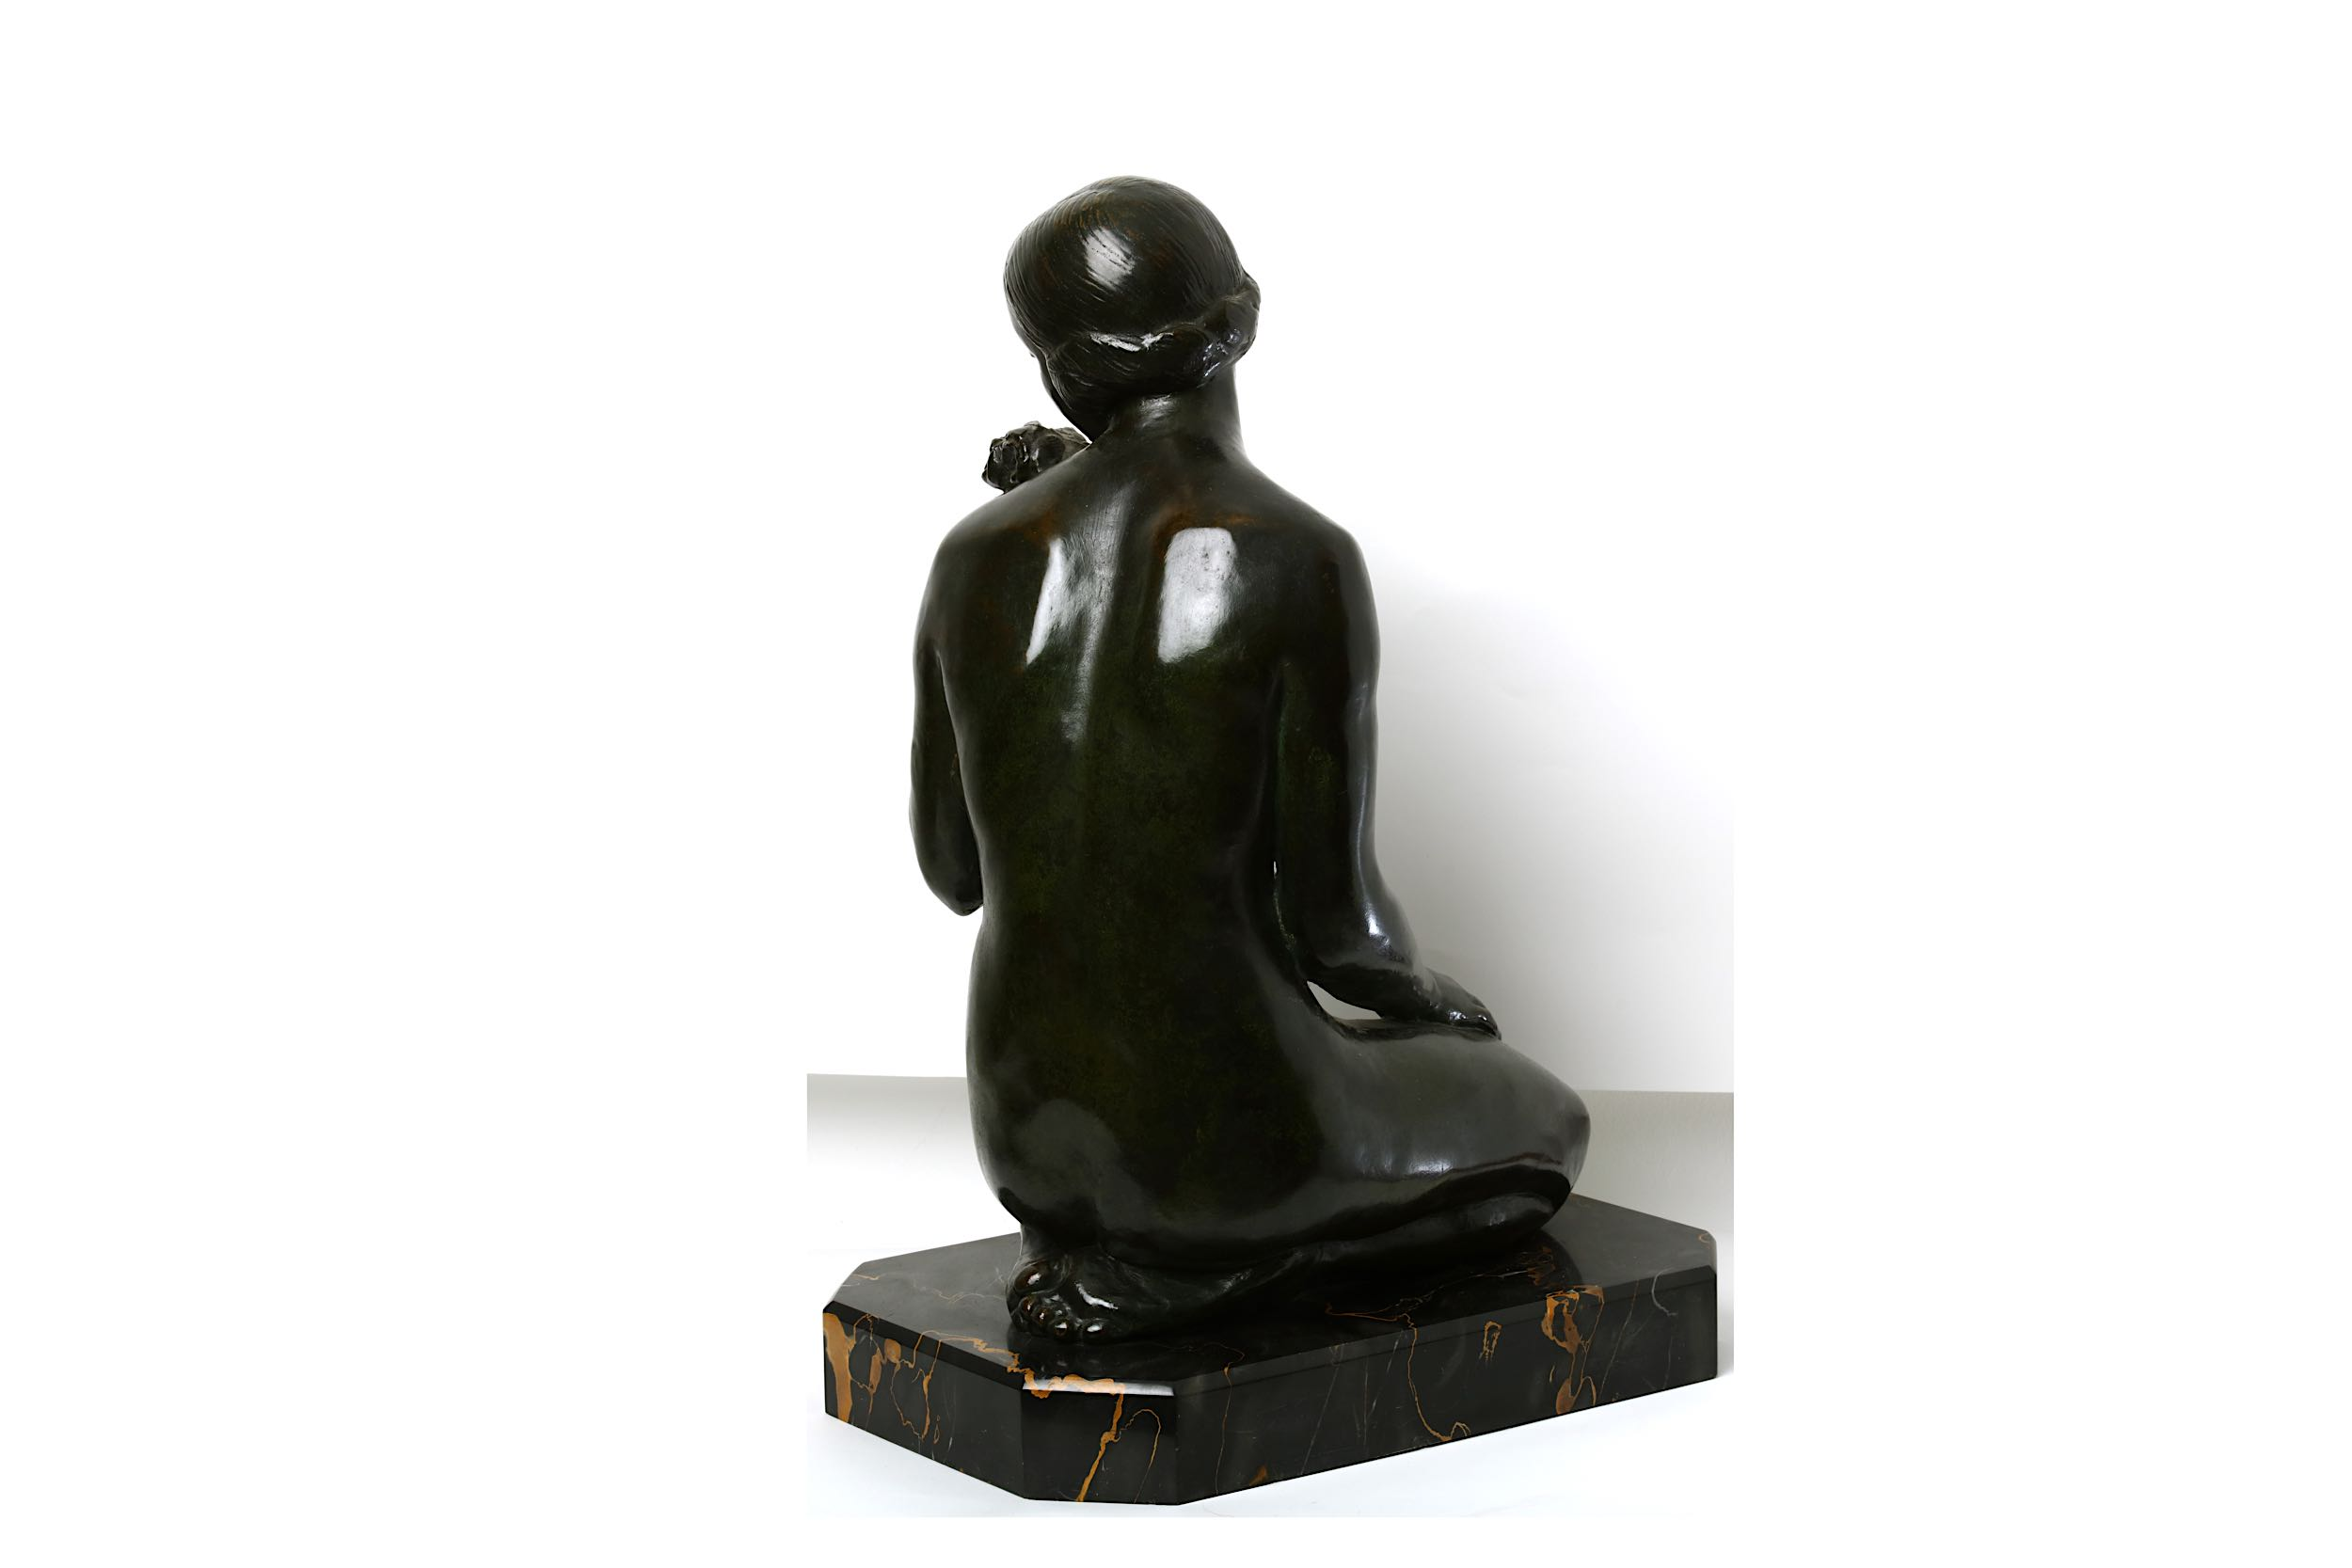 Lot 26 - LUCIEN CHARLES EDOUARD ALLIOT (1877-1967), A BRONZE FIGURE OF A SEATED NUDE.